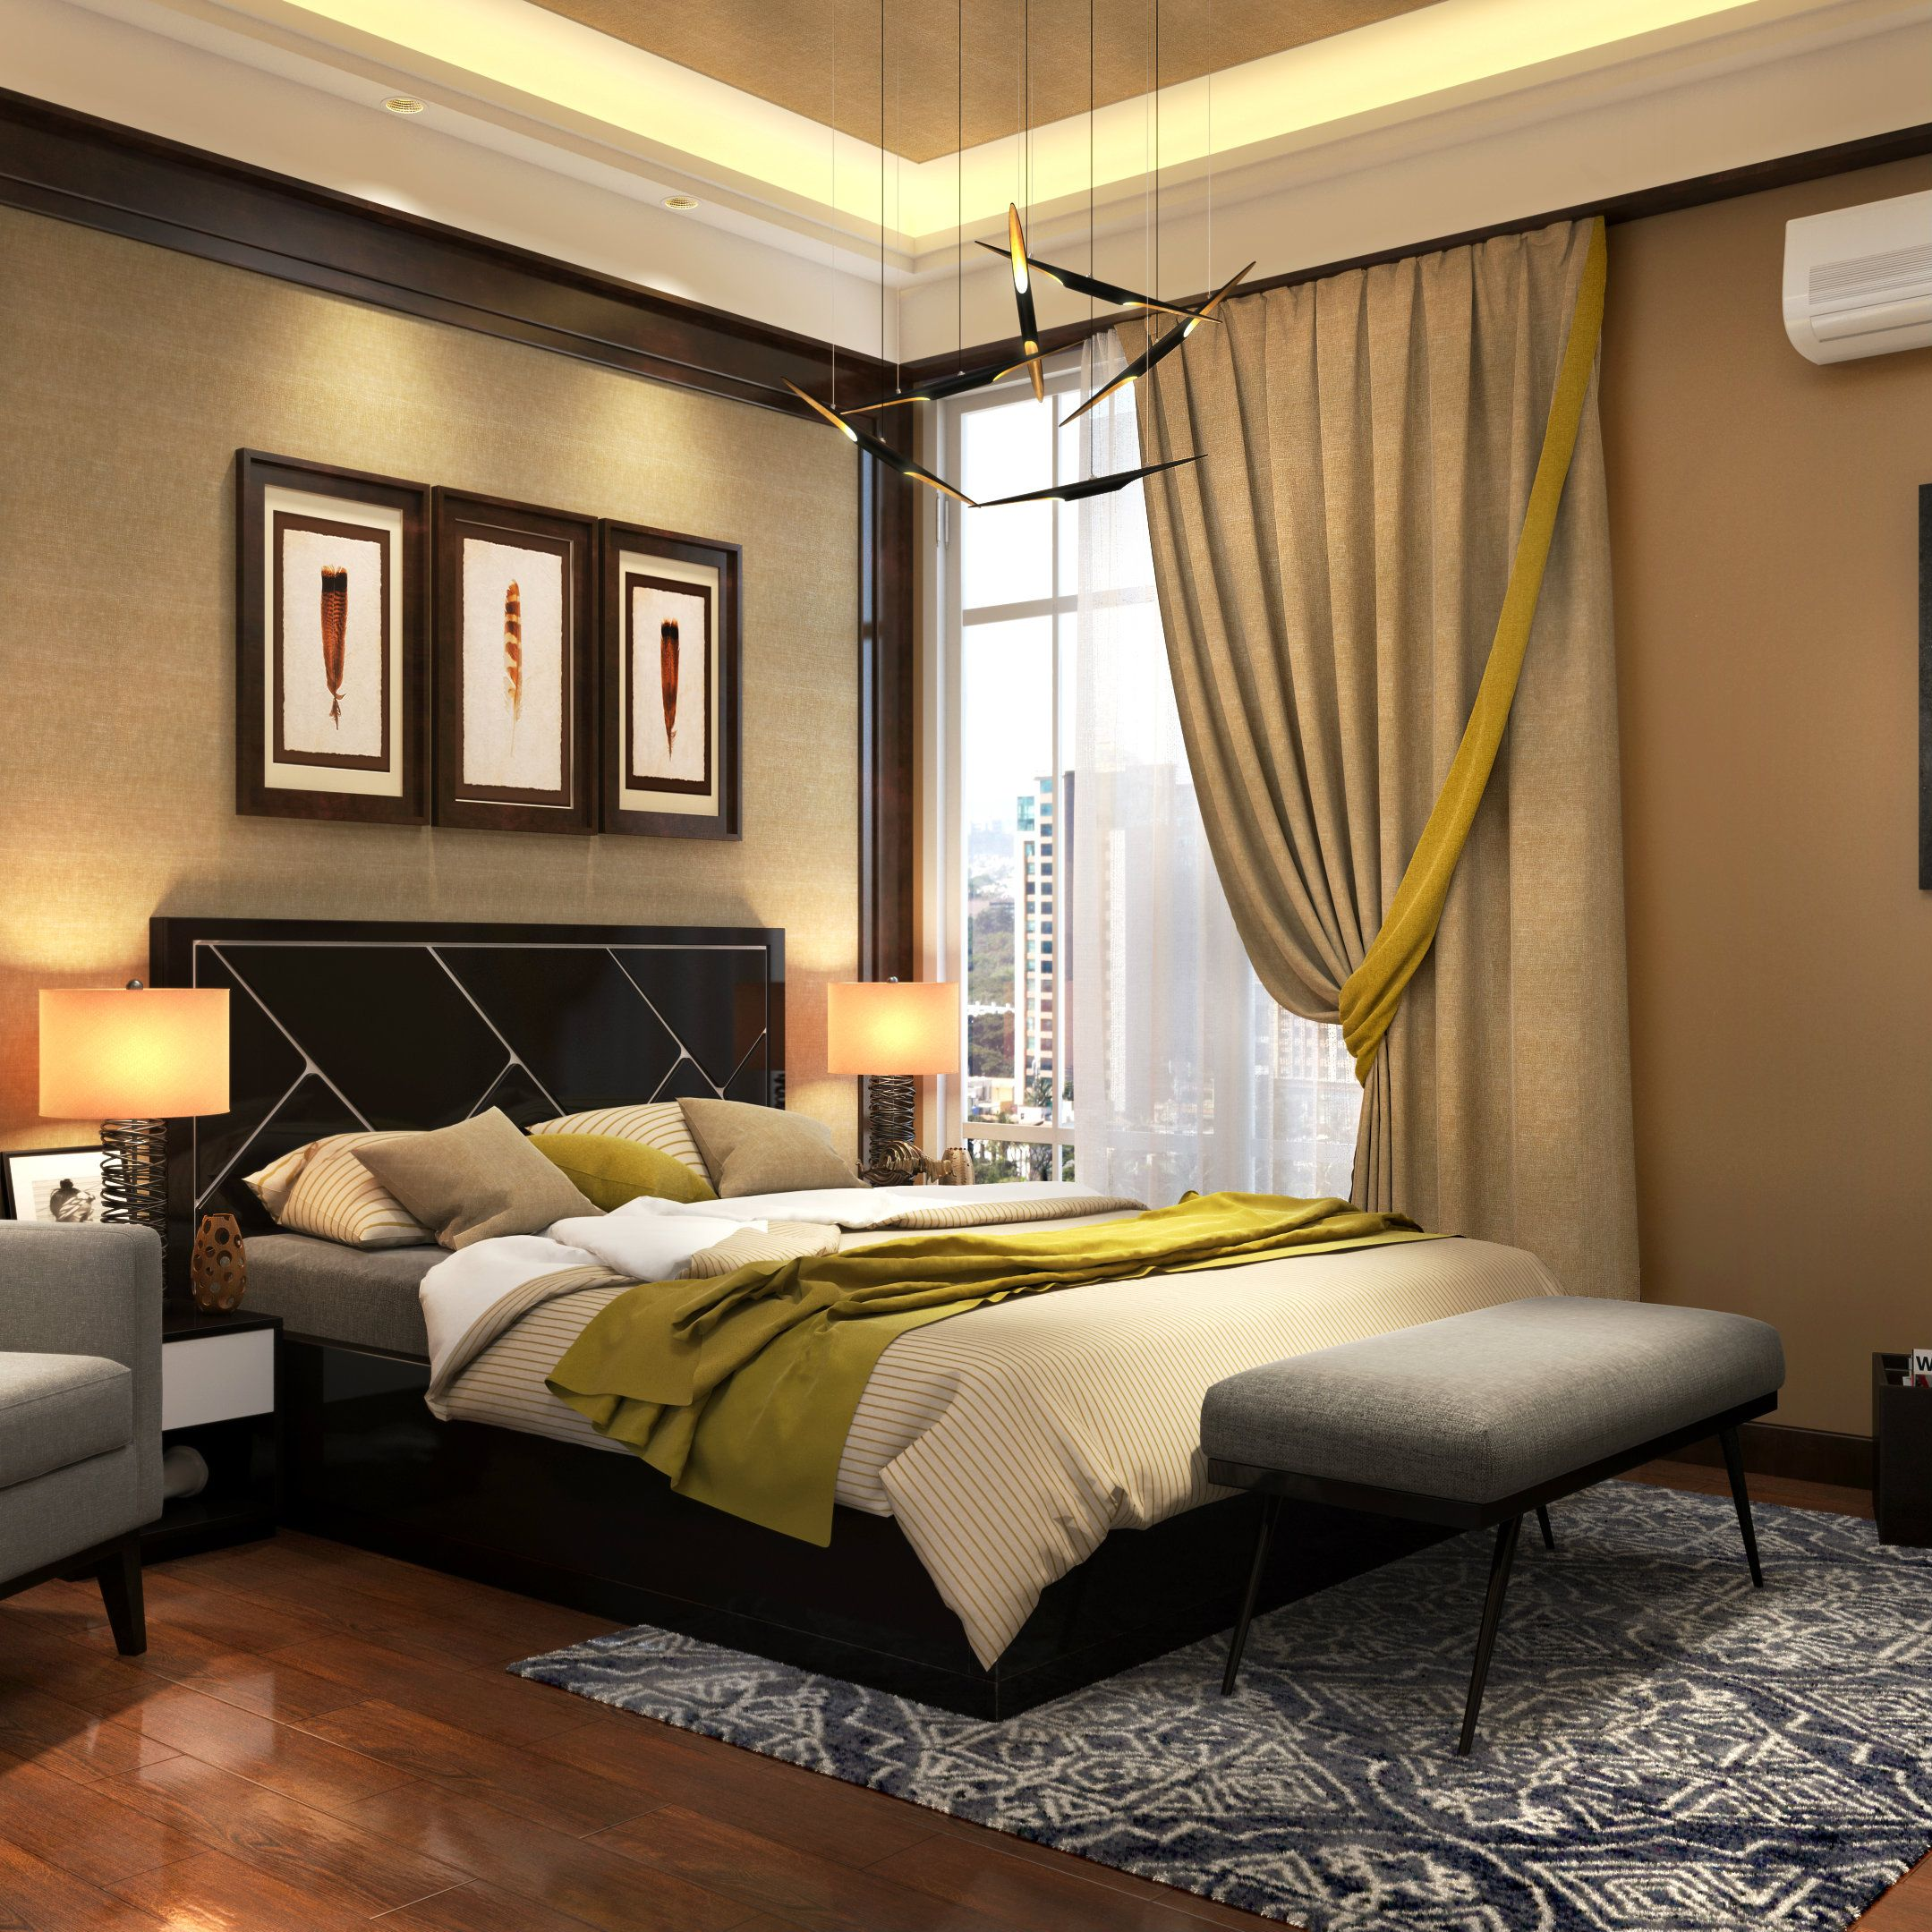 Luxurious Bedroom Design Entrancing A Luxurious Bedroom Design That Lets You Sink Into Splendid Dreams Inspiration Design